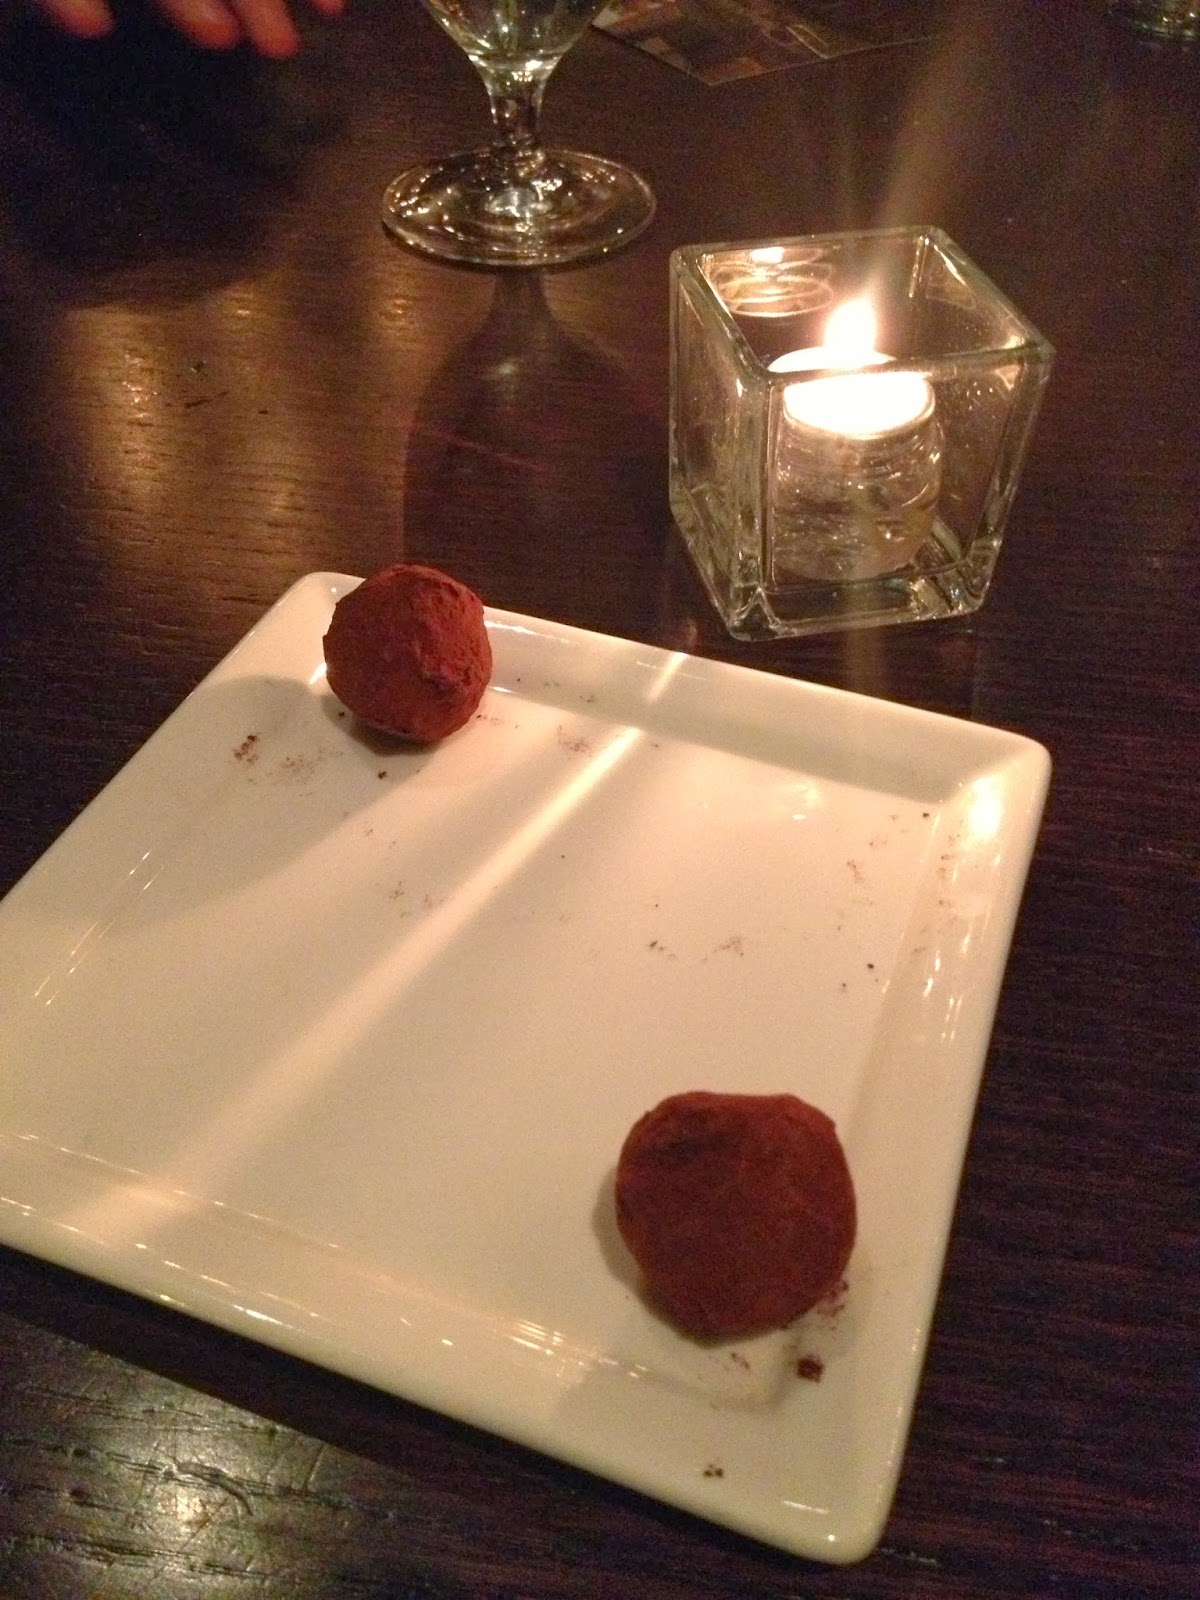 Boston Food Blog Chocolate Dessert Truffles Deuxave Back Bay